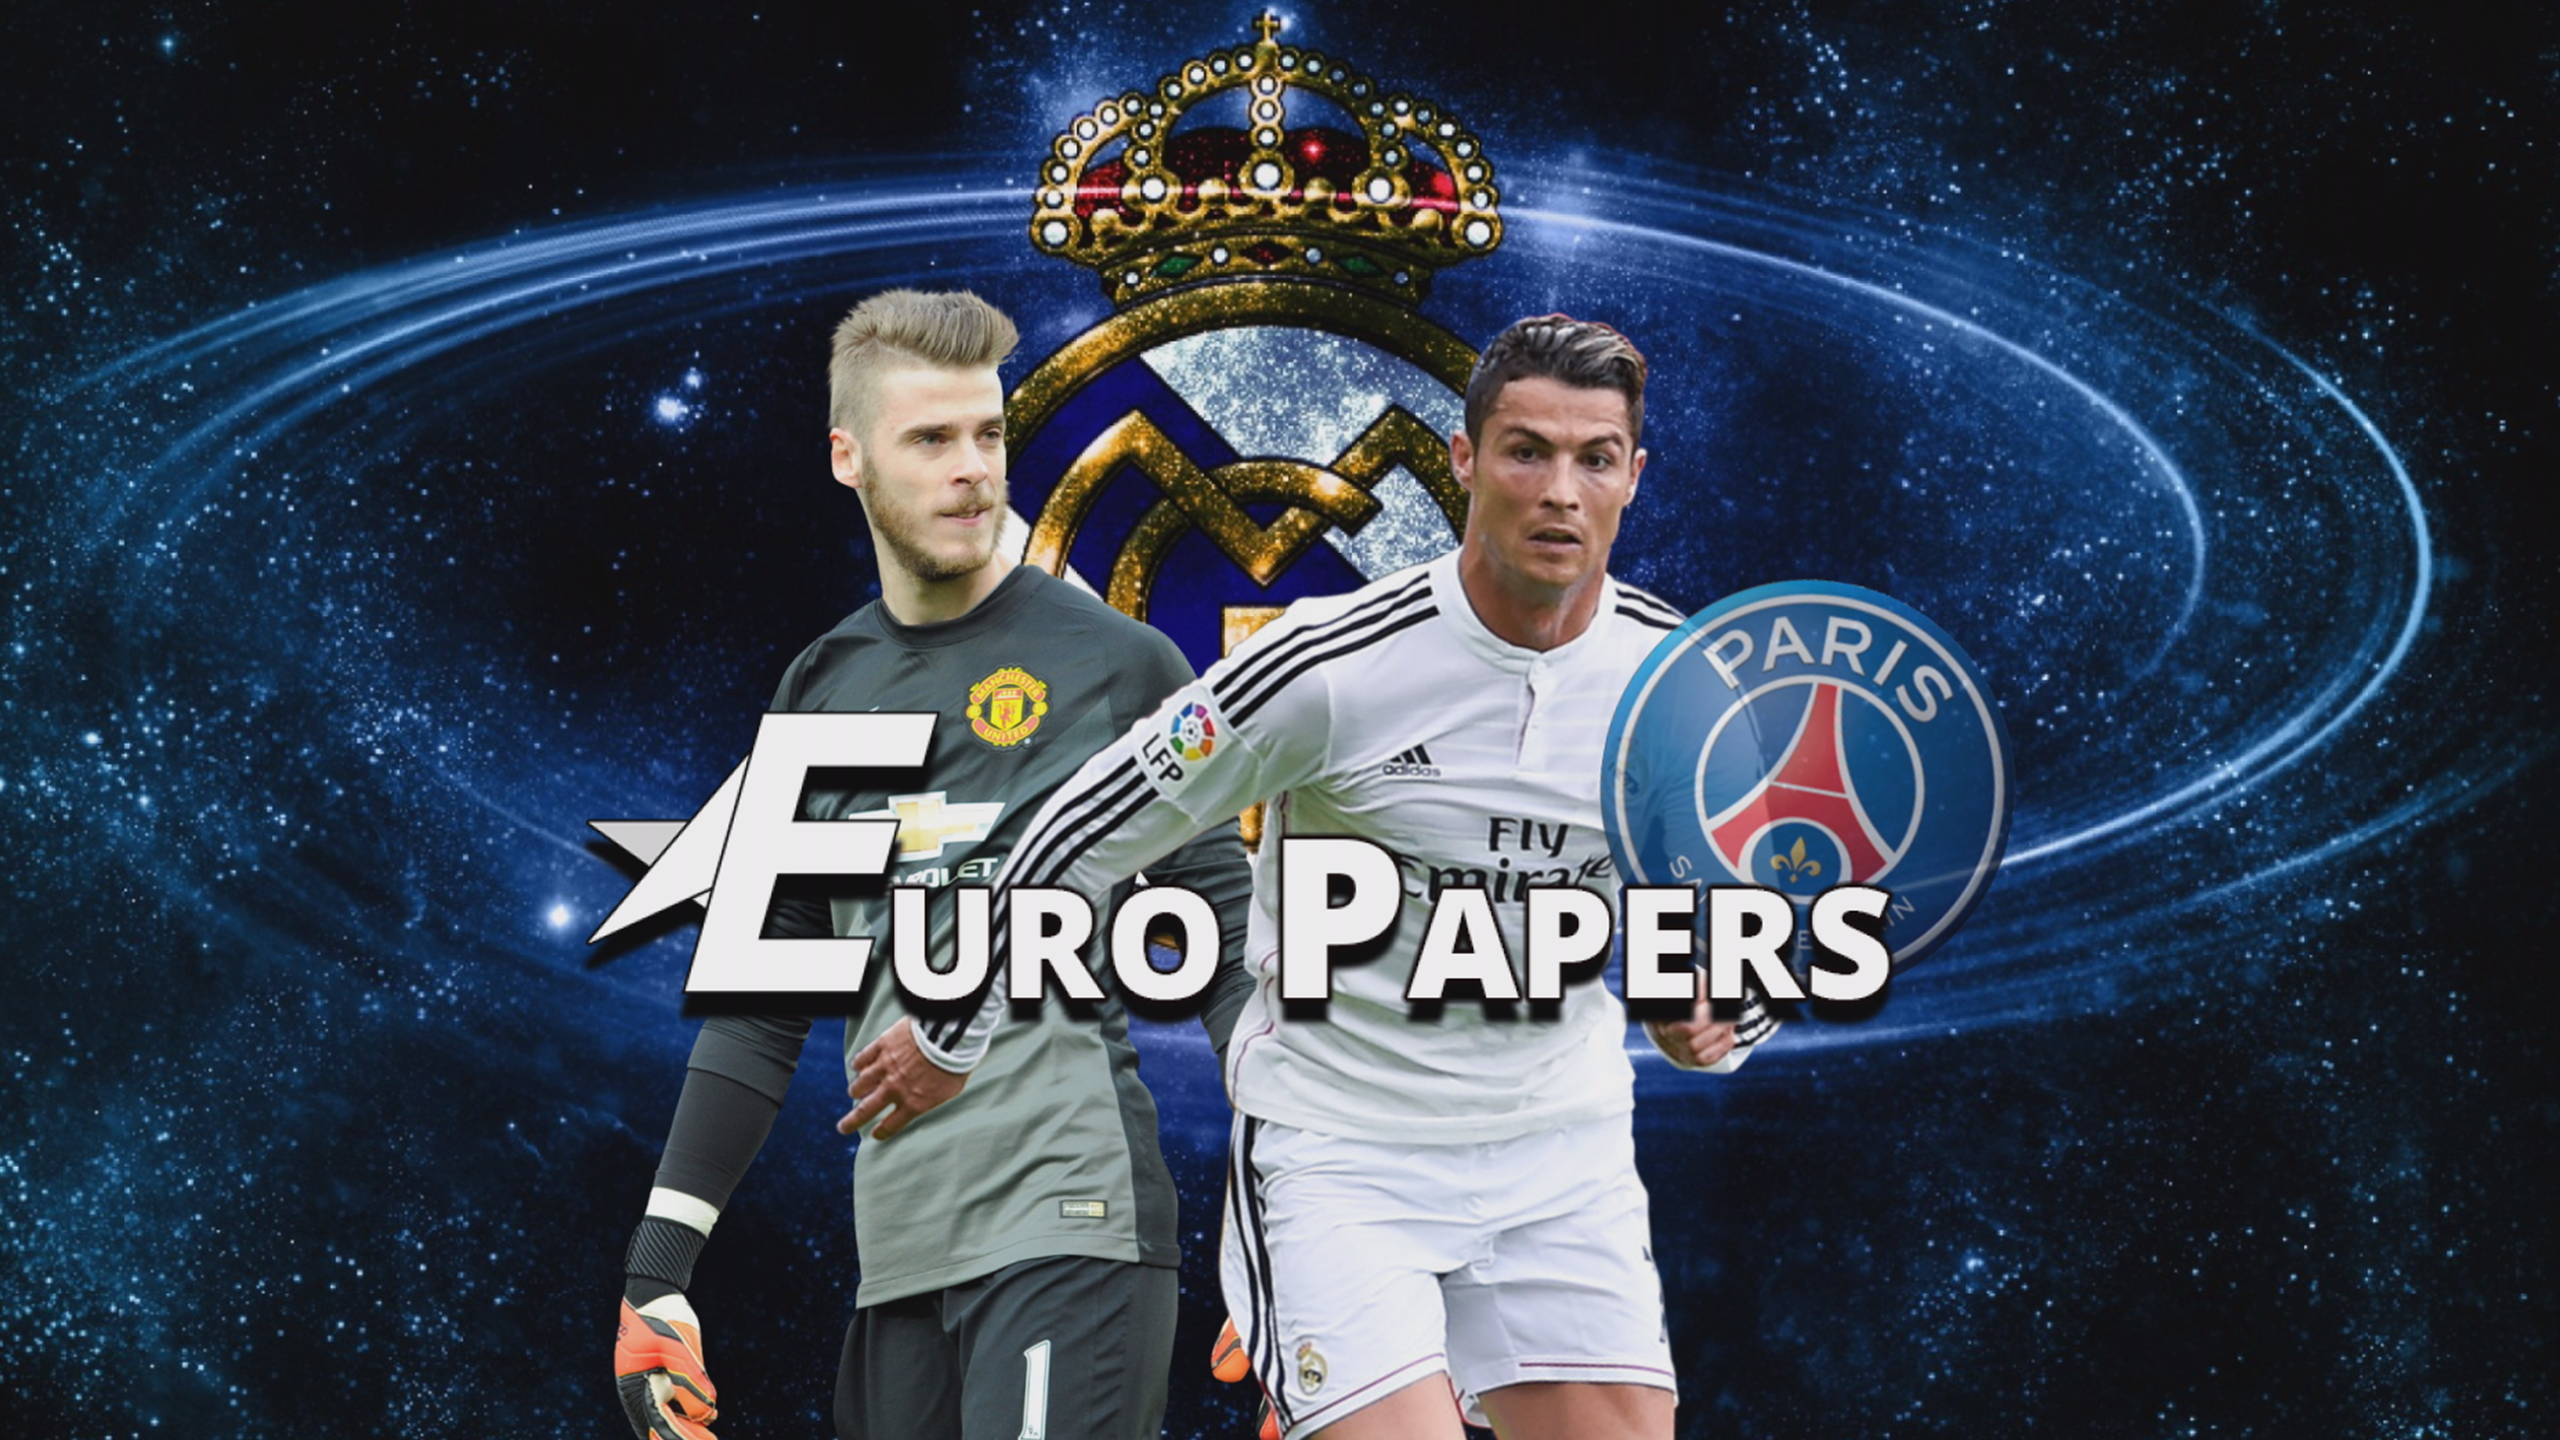 De Gea nears Real Madrid - as PSG threaten Ronaldo move - Euro Papers